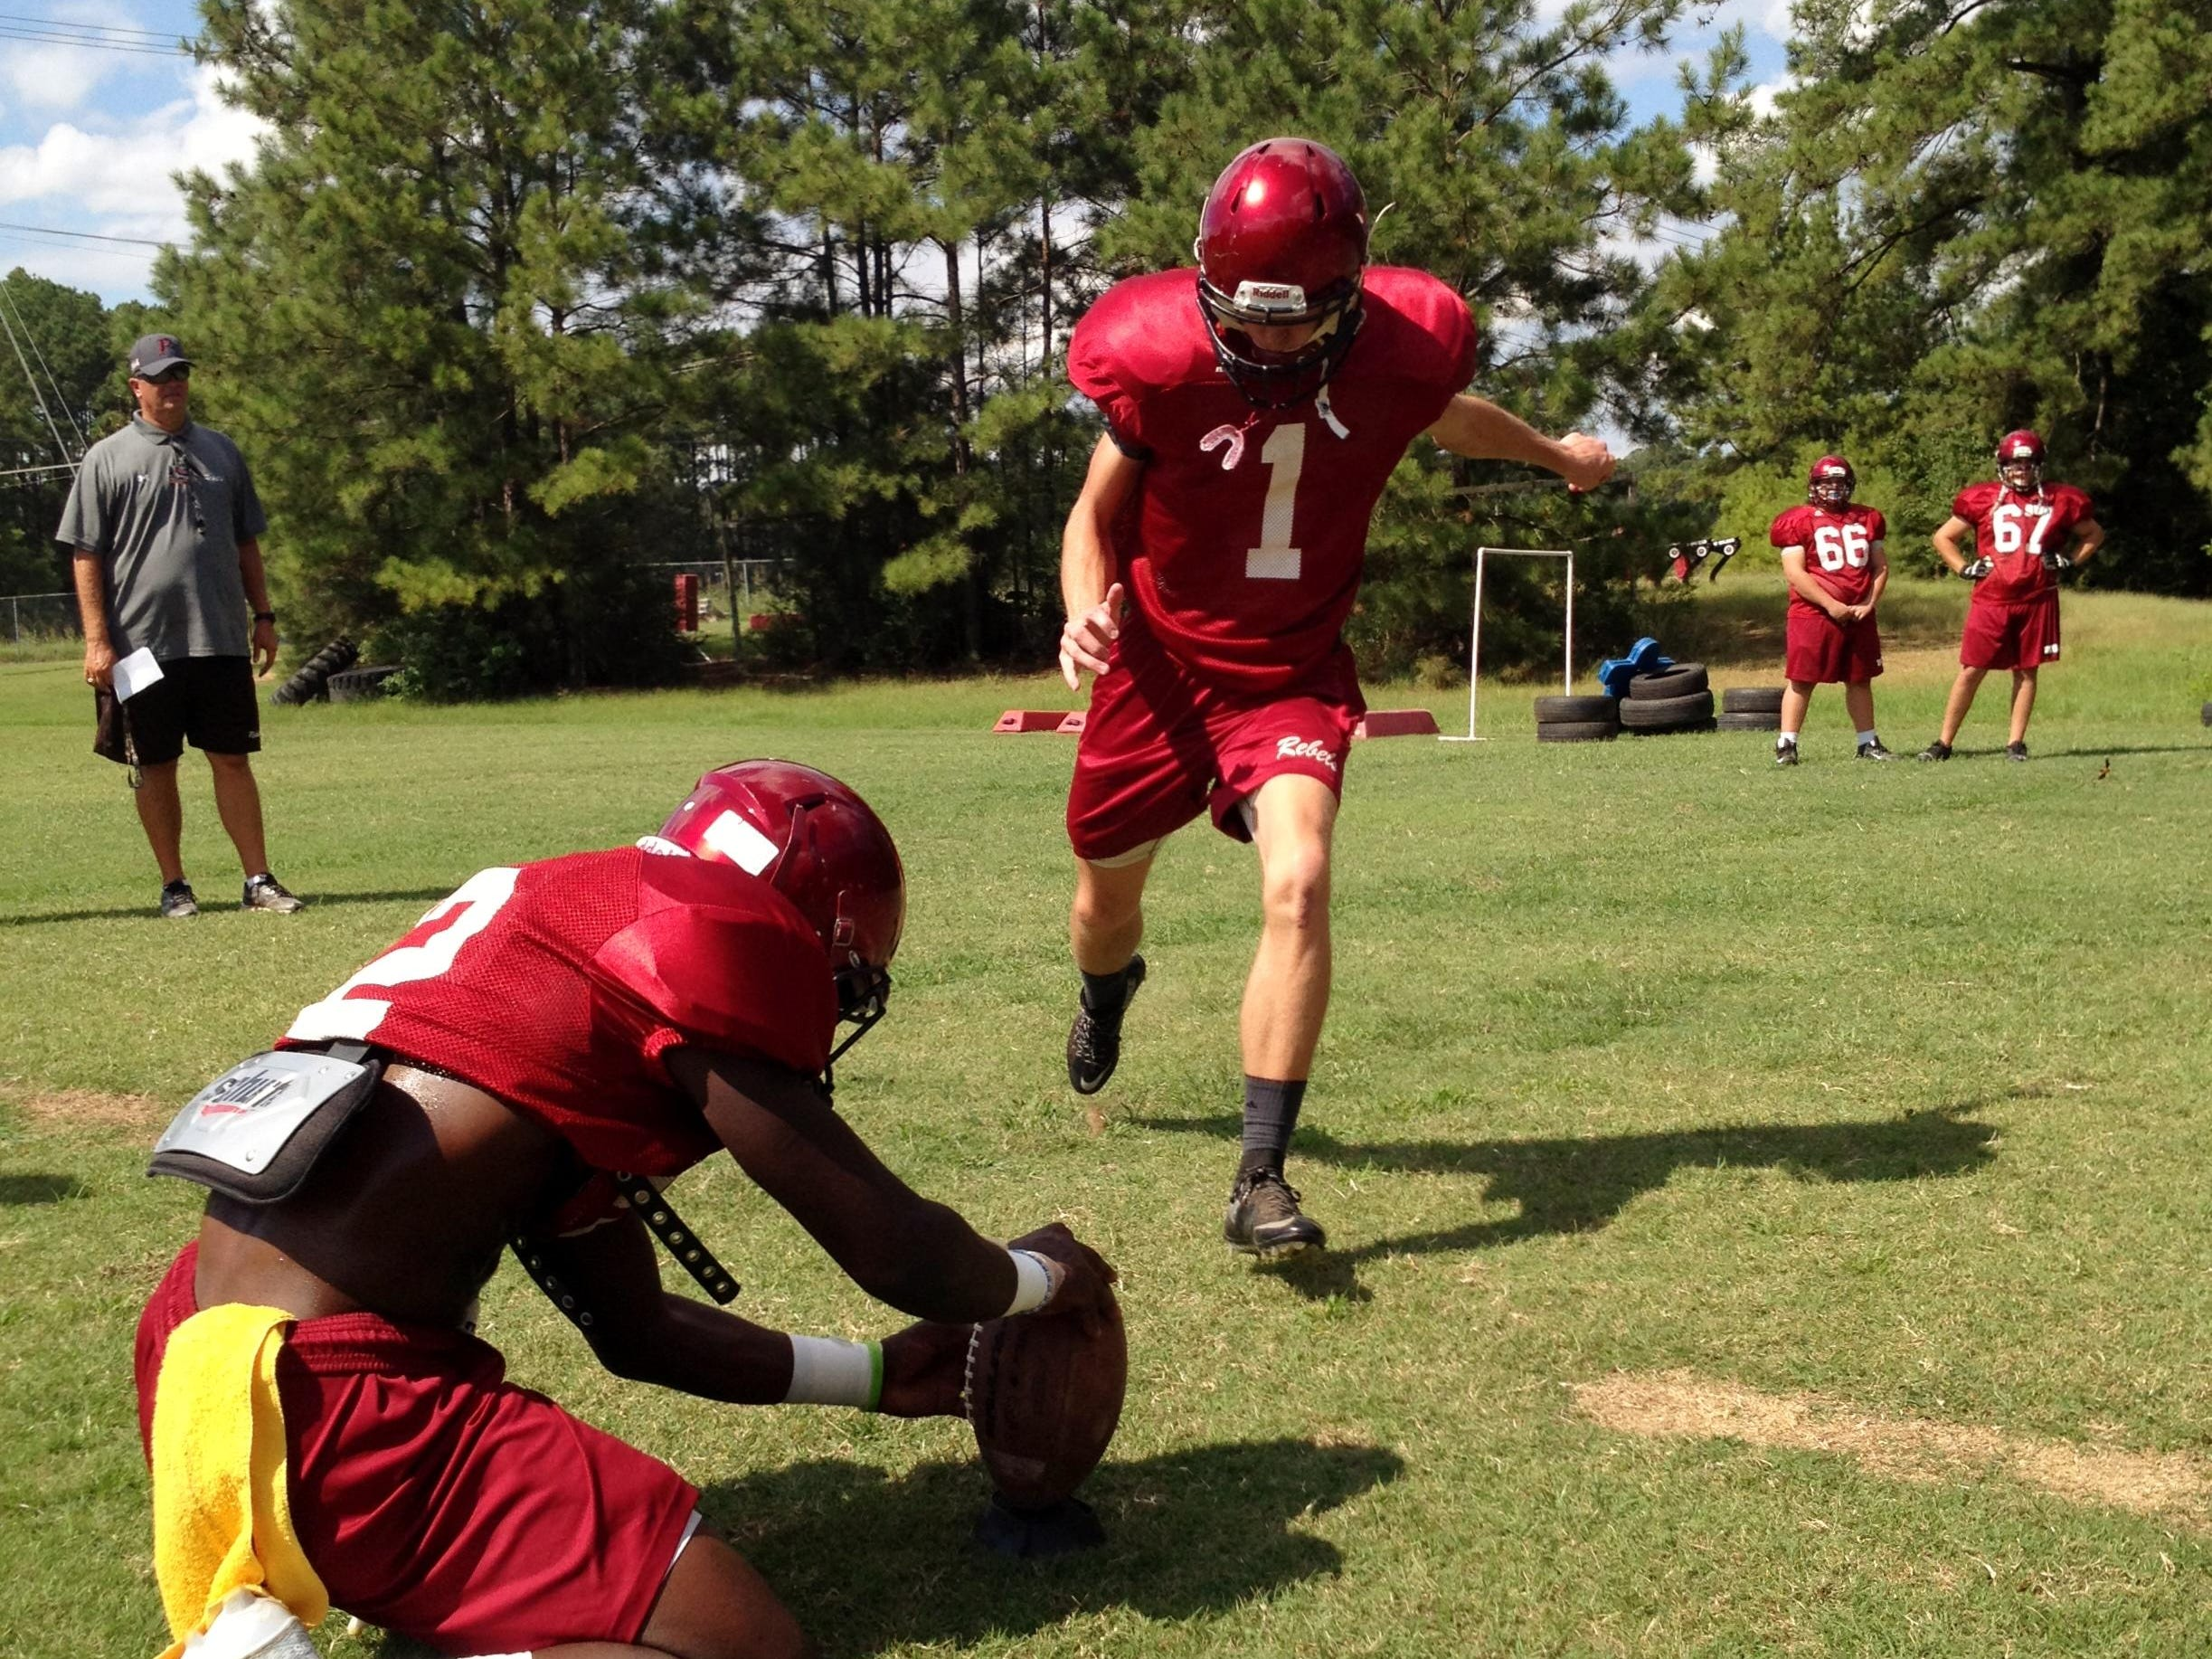 Pineville senior placekicker Gavin Capehart (1) attempts a field goal at practice on Tuesday. Capehart, a transfer from Alabama, is the latest in a long line of Rebels who played kicker and a skill position. Through two games, Capehart has made five PATs and has one reception for 35 yards.